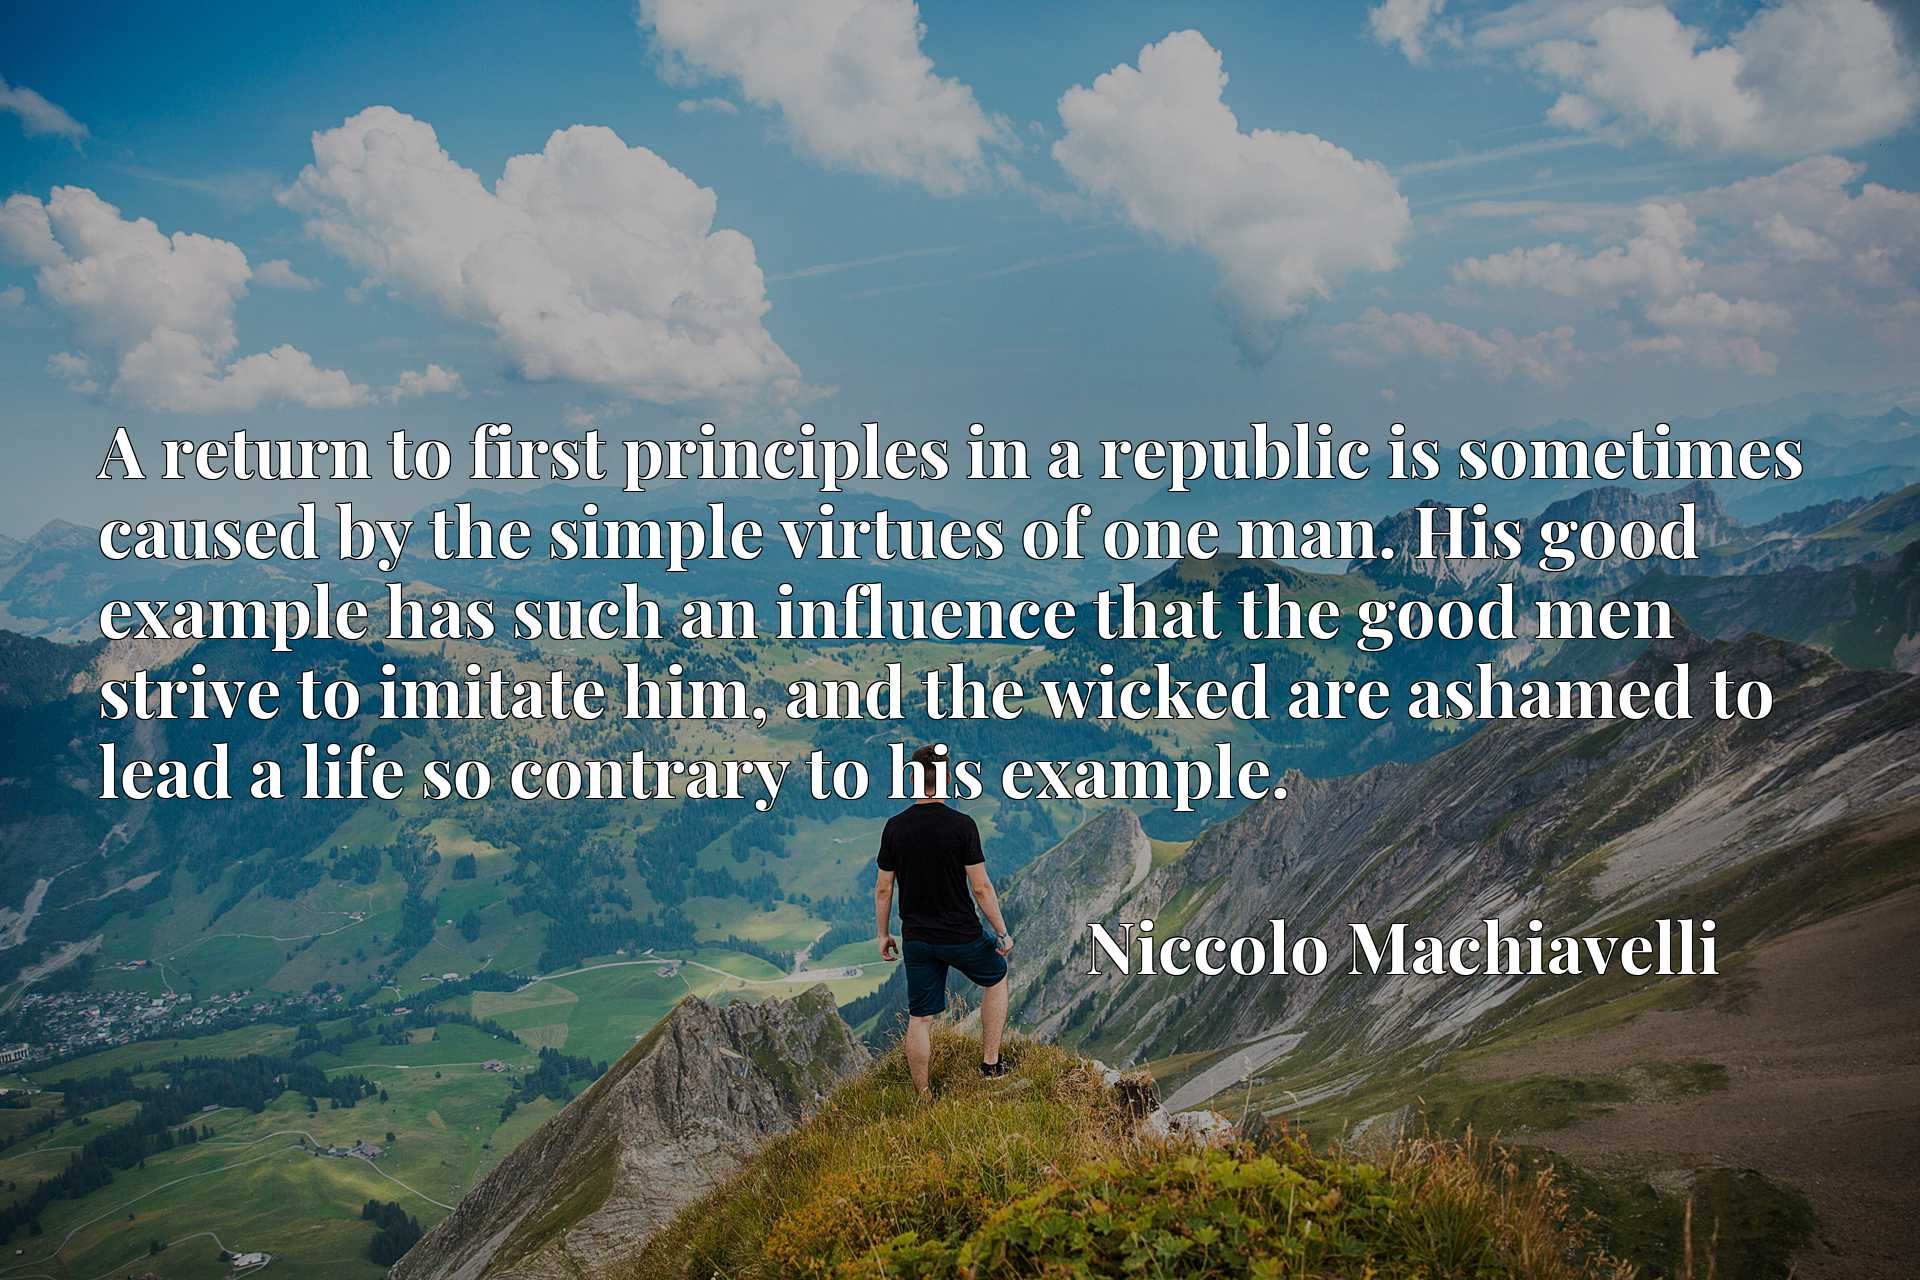 A return to first principles in a republic is sometimes caused by the simple virtues of one man. His good example has such an influence that the good men strive to imitate him, and the wicked are ashamed to lead a life so contrary to his example.